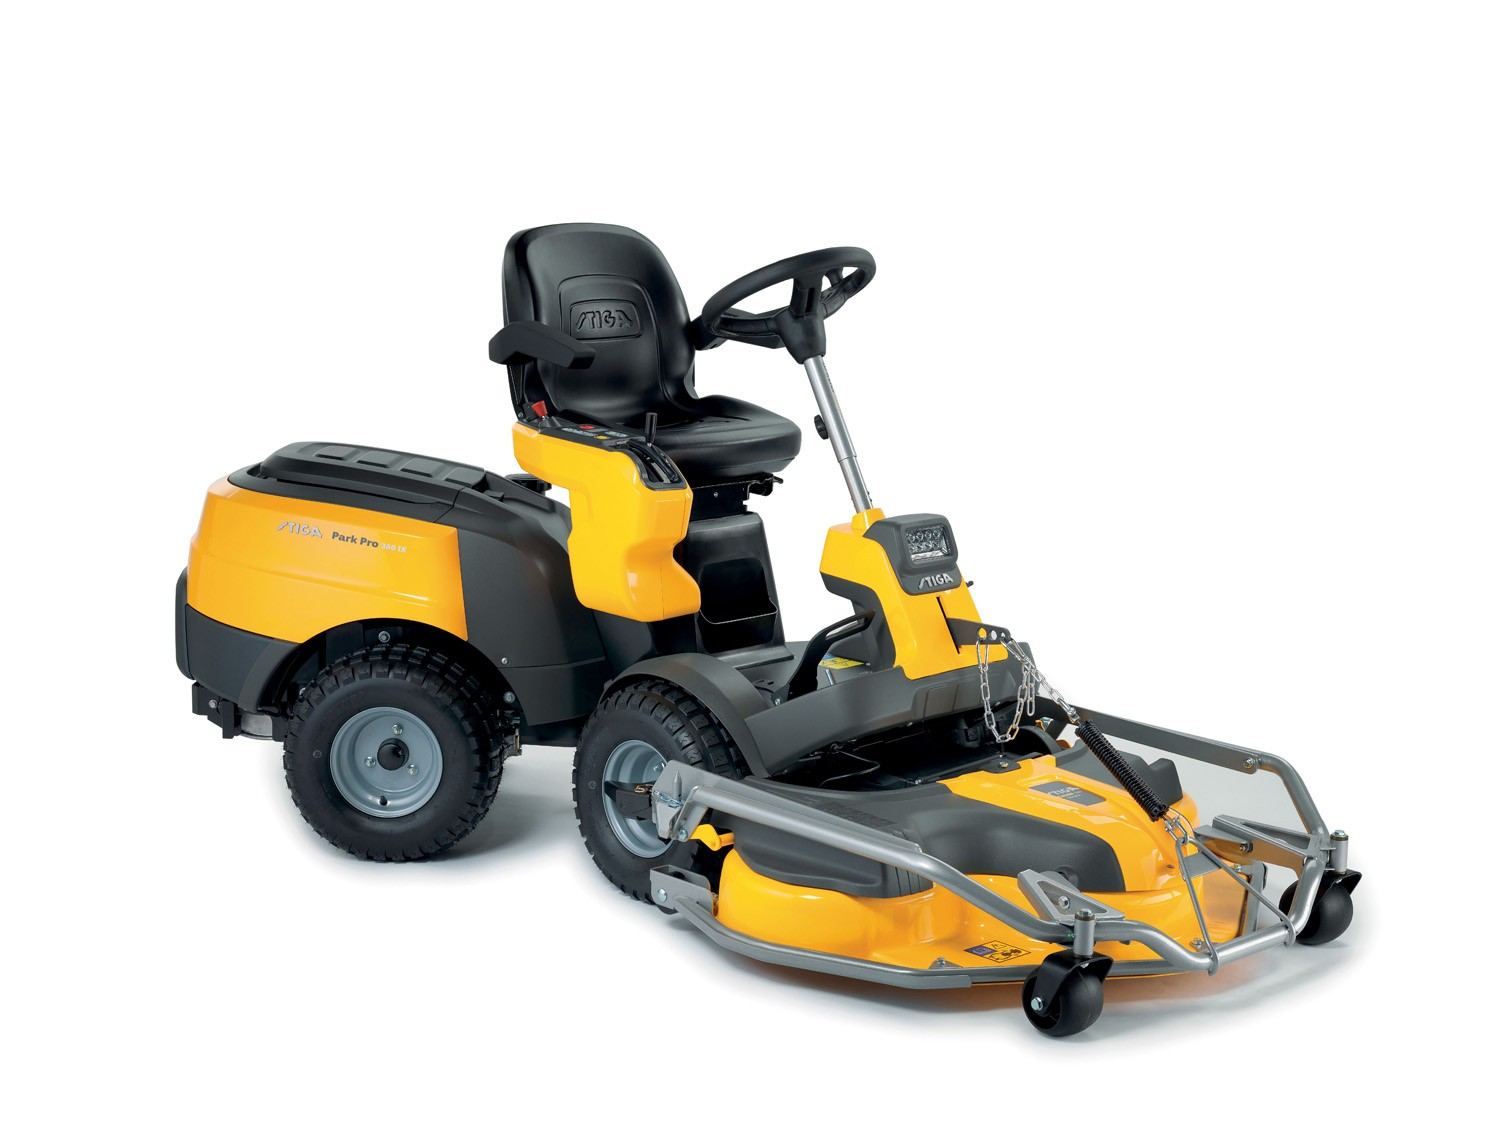 Stiga Park Pro 340 IX 4WD Ride-on Lawnmower